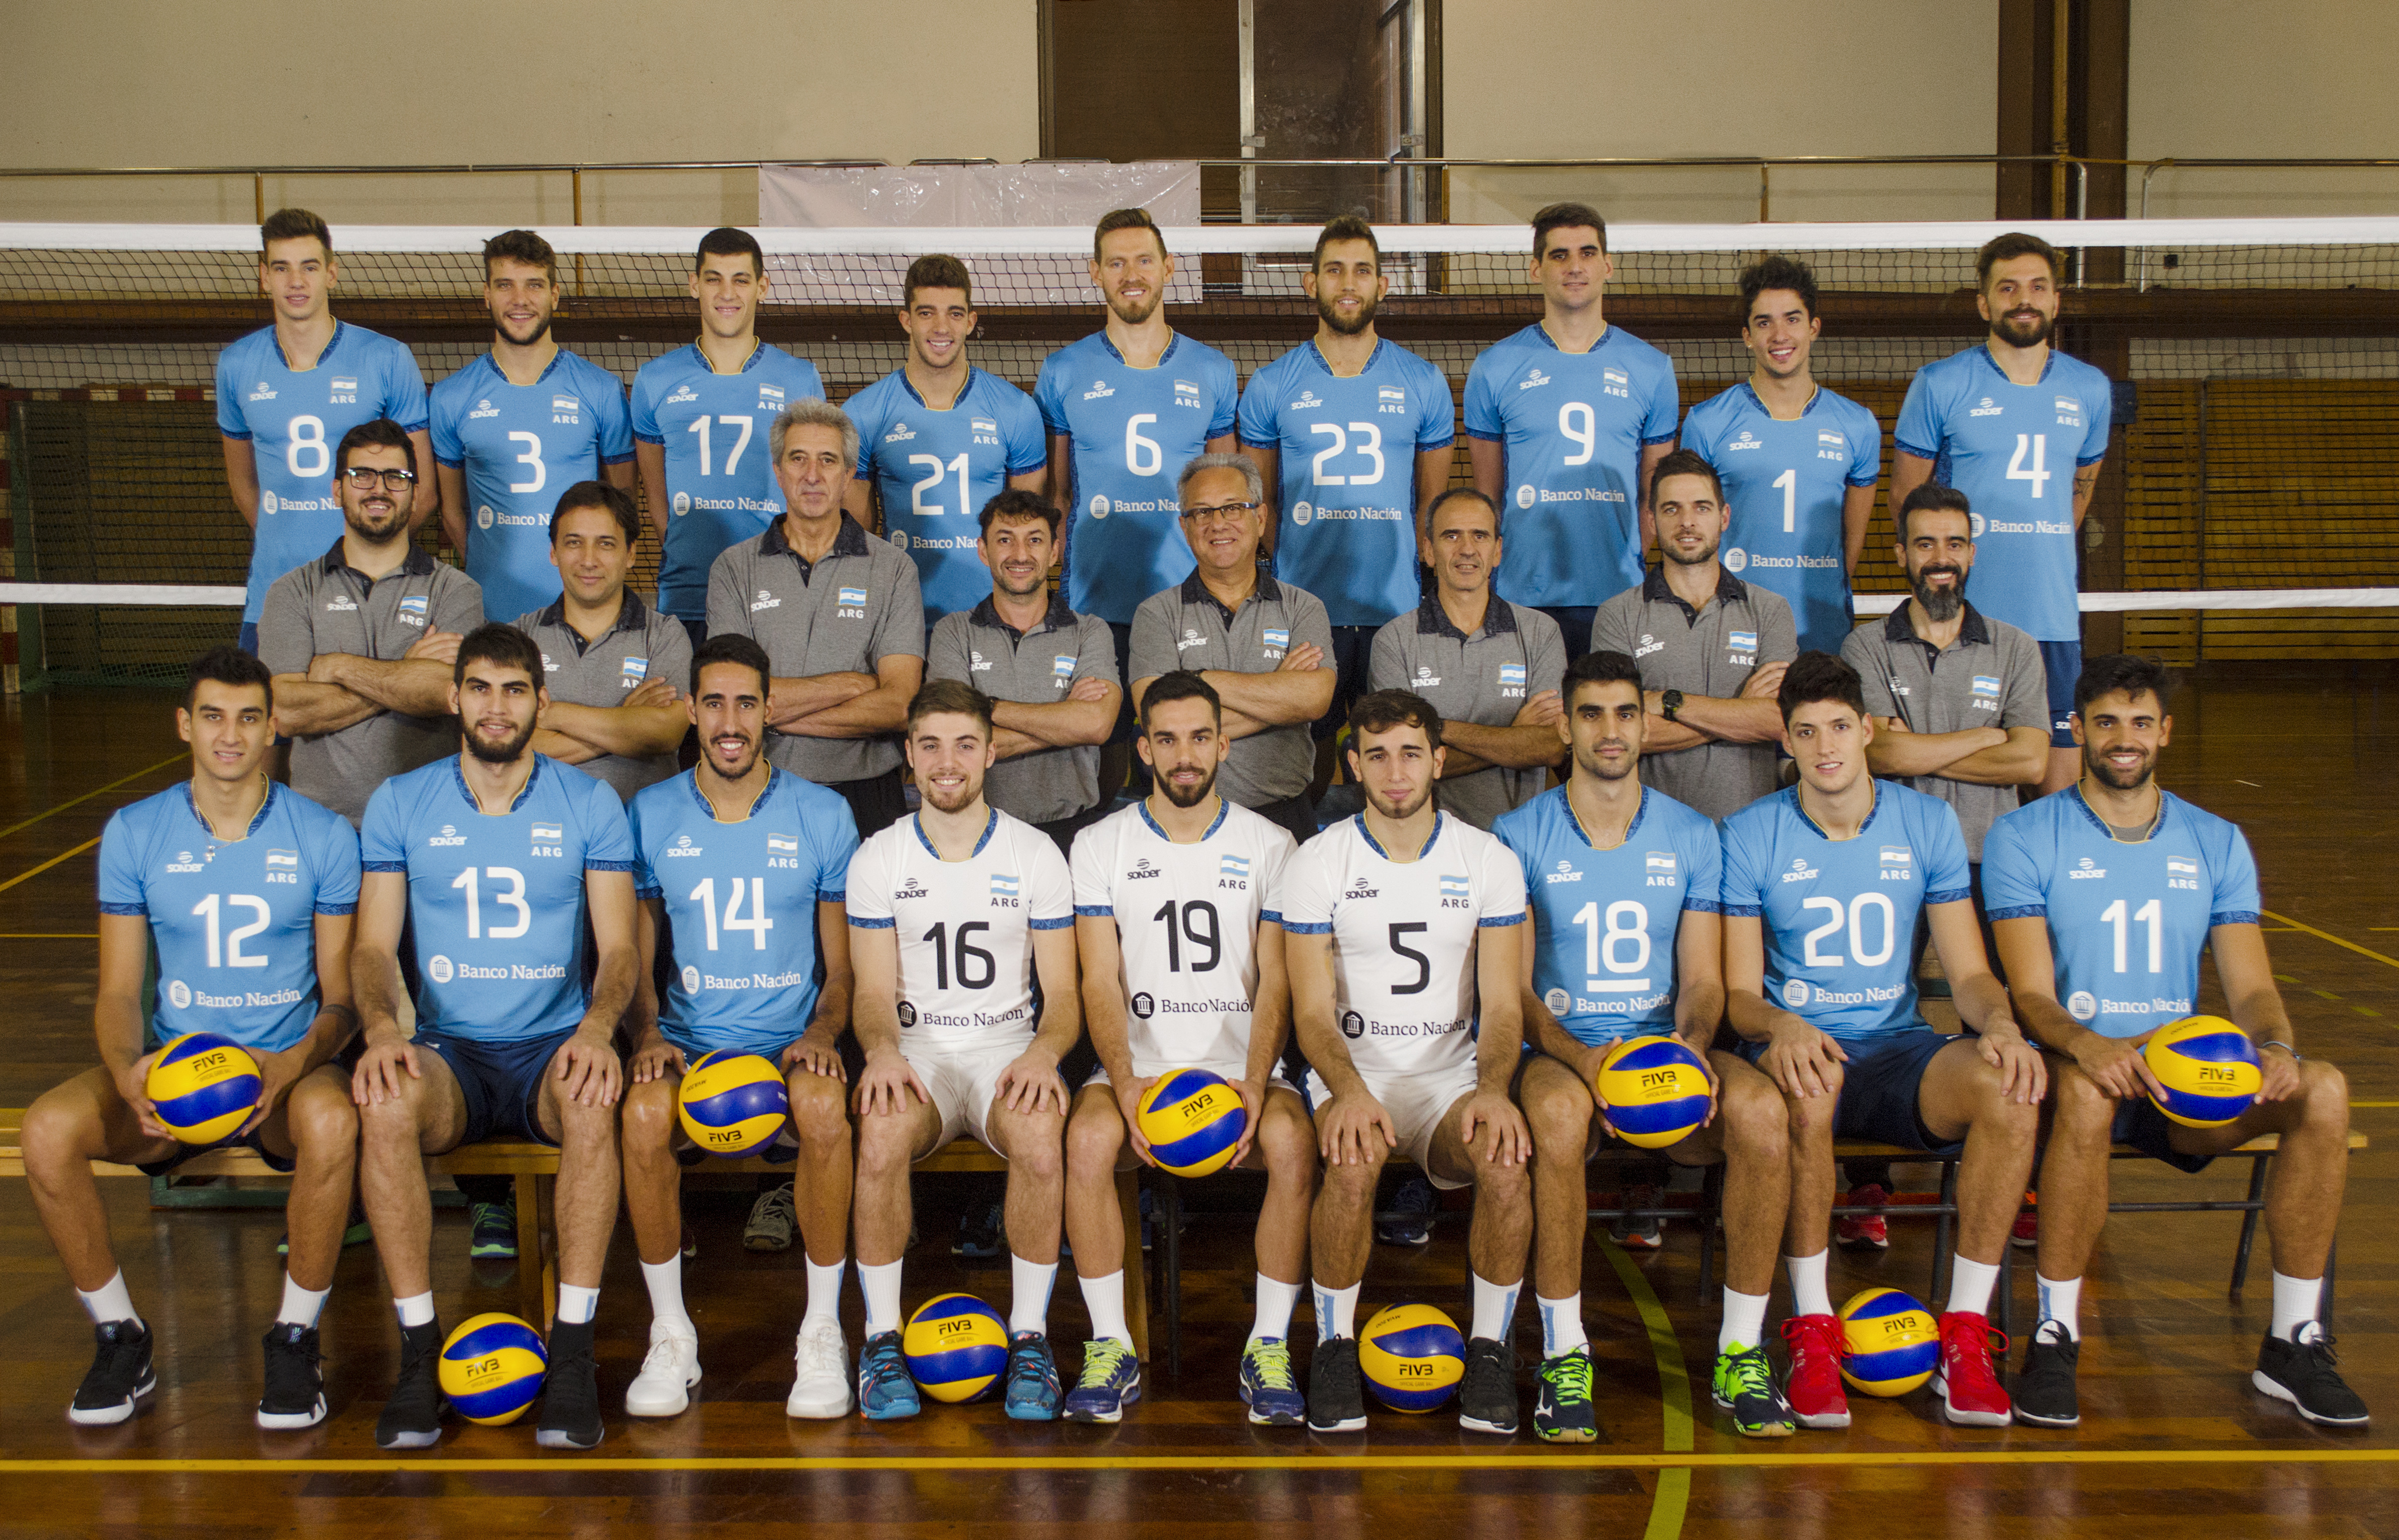 Fivb Volleyball Nations League 2018 Men S Teams Overview Argentina